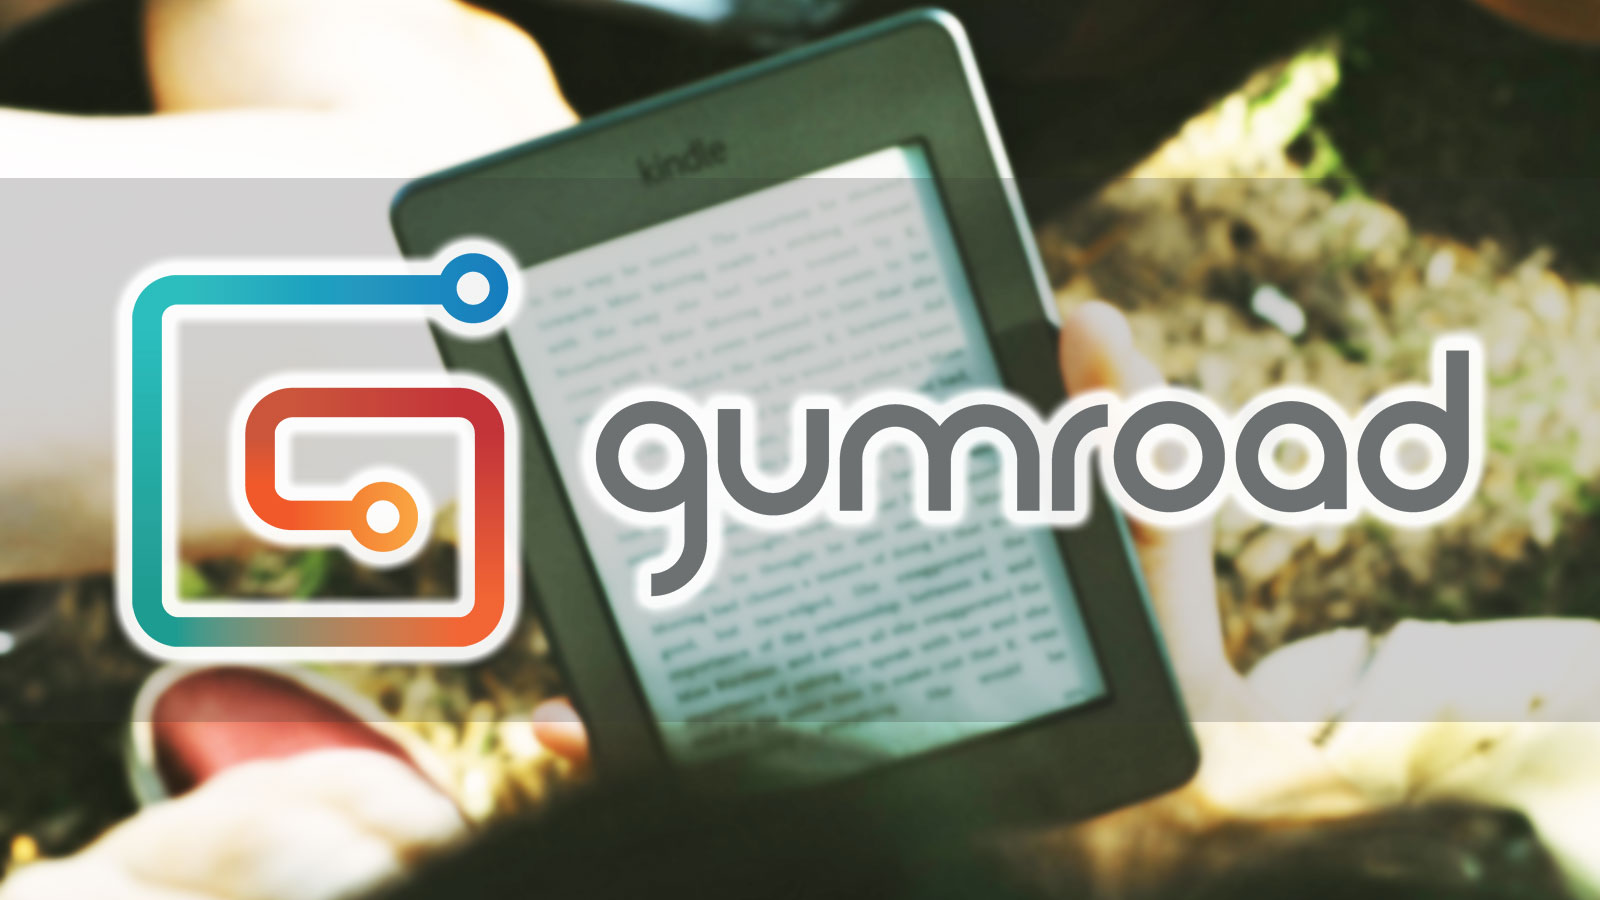 Gumroad logo and eBook